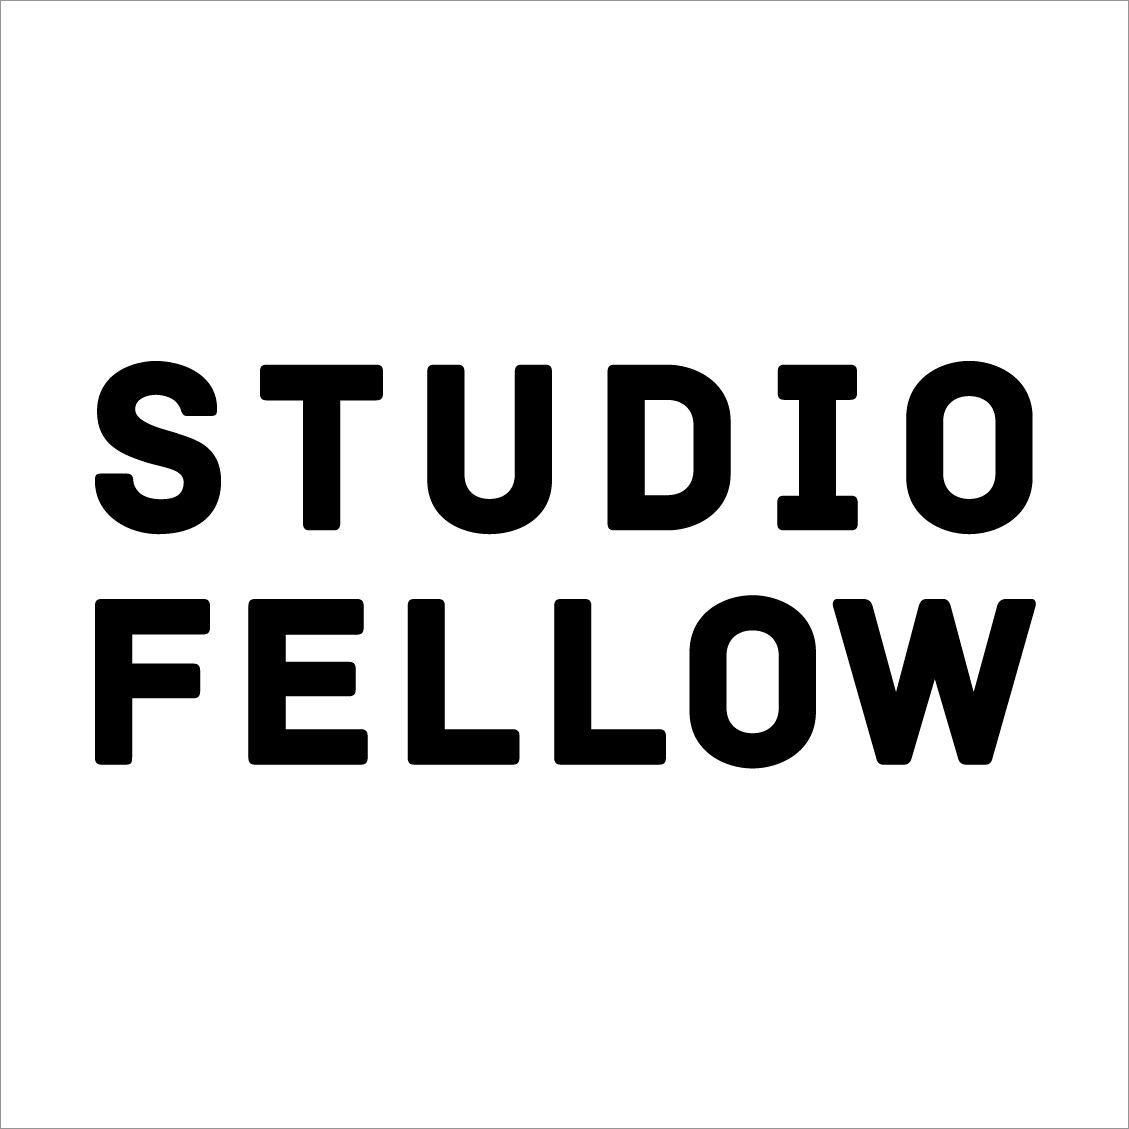 STUDIO FELLOW